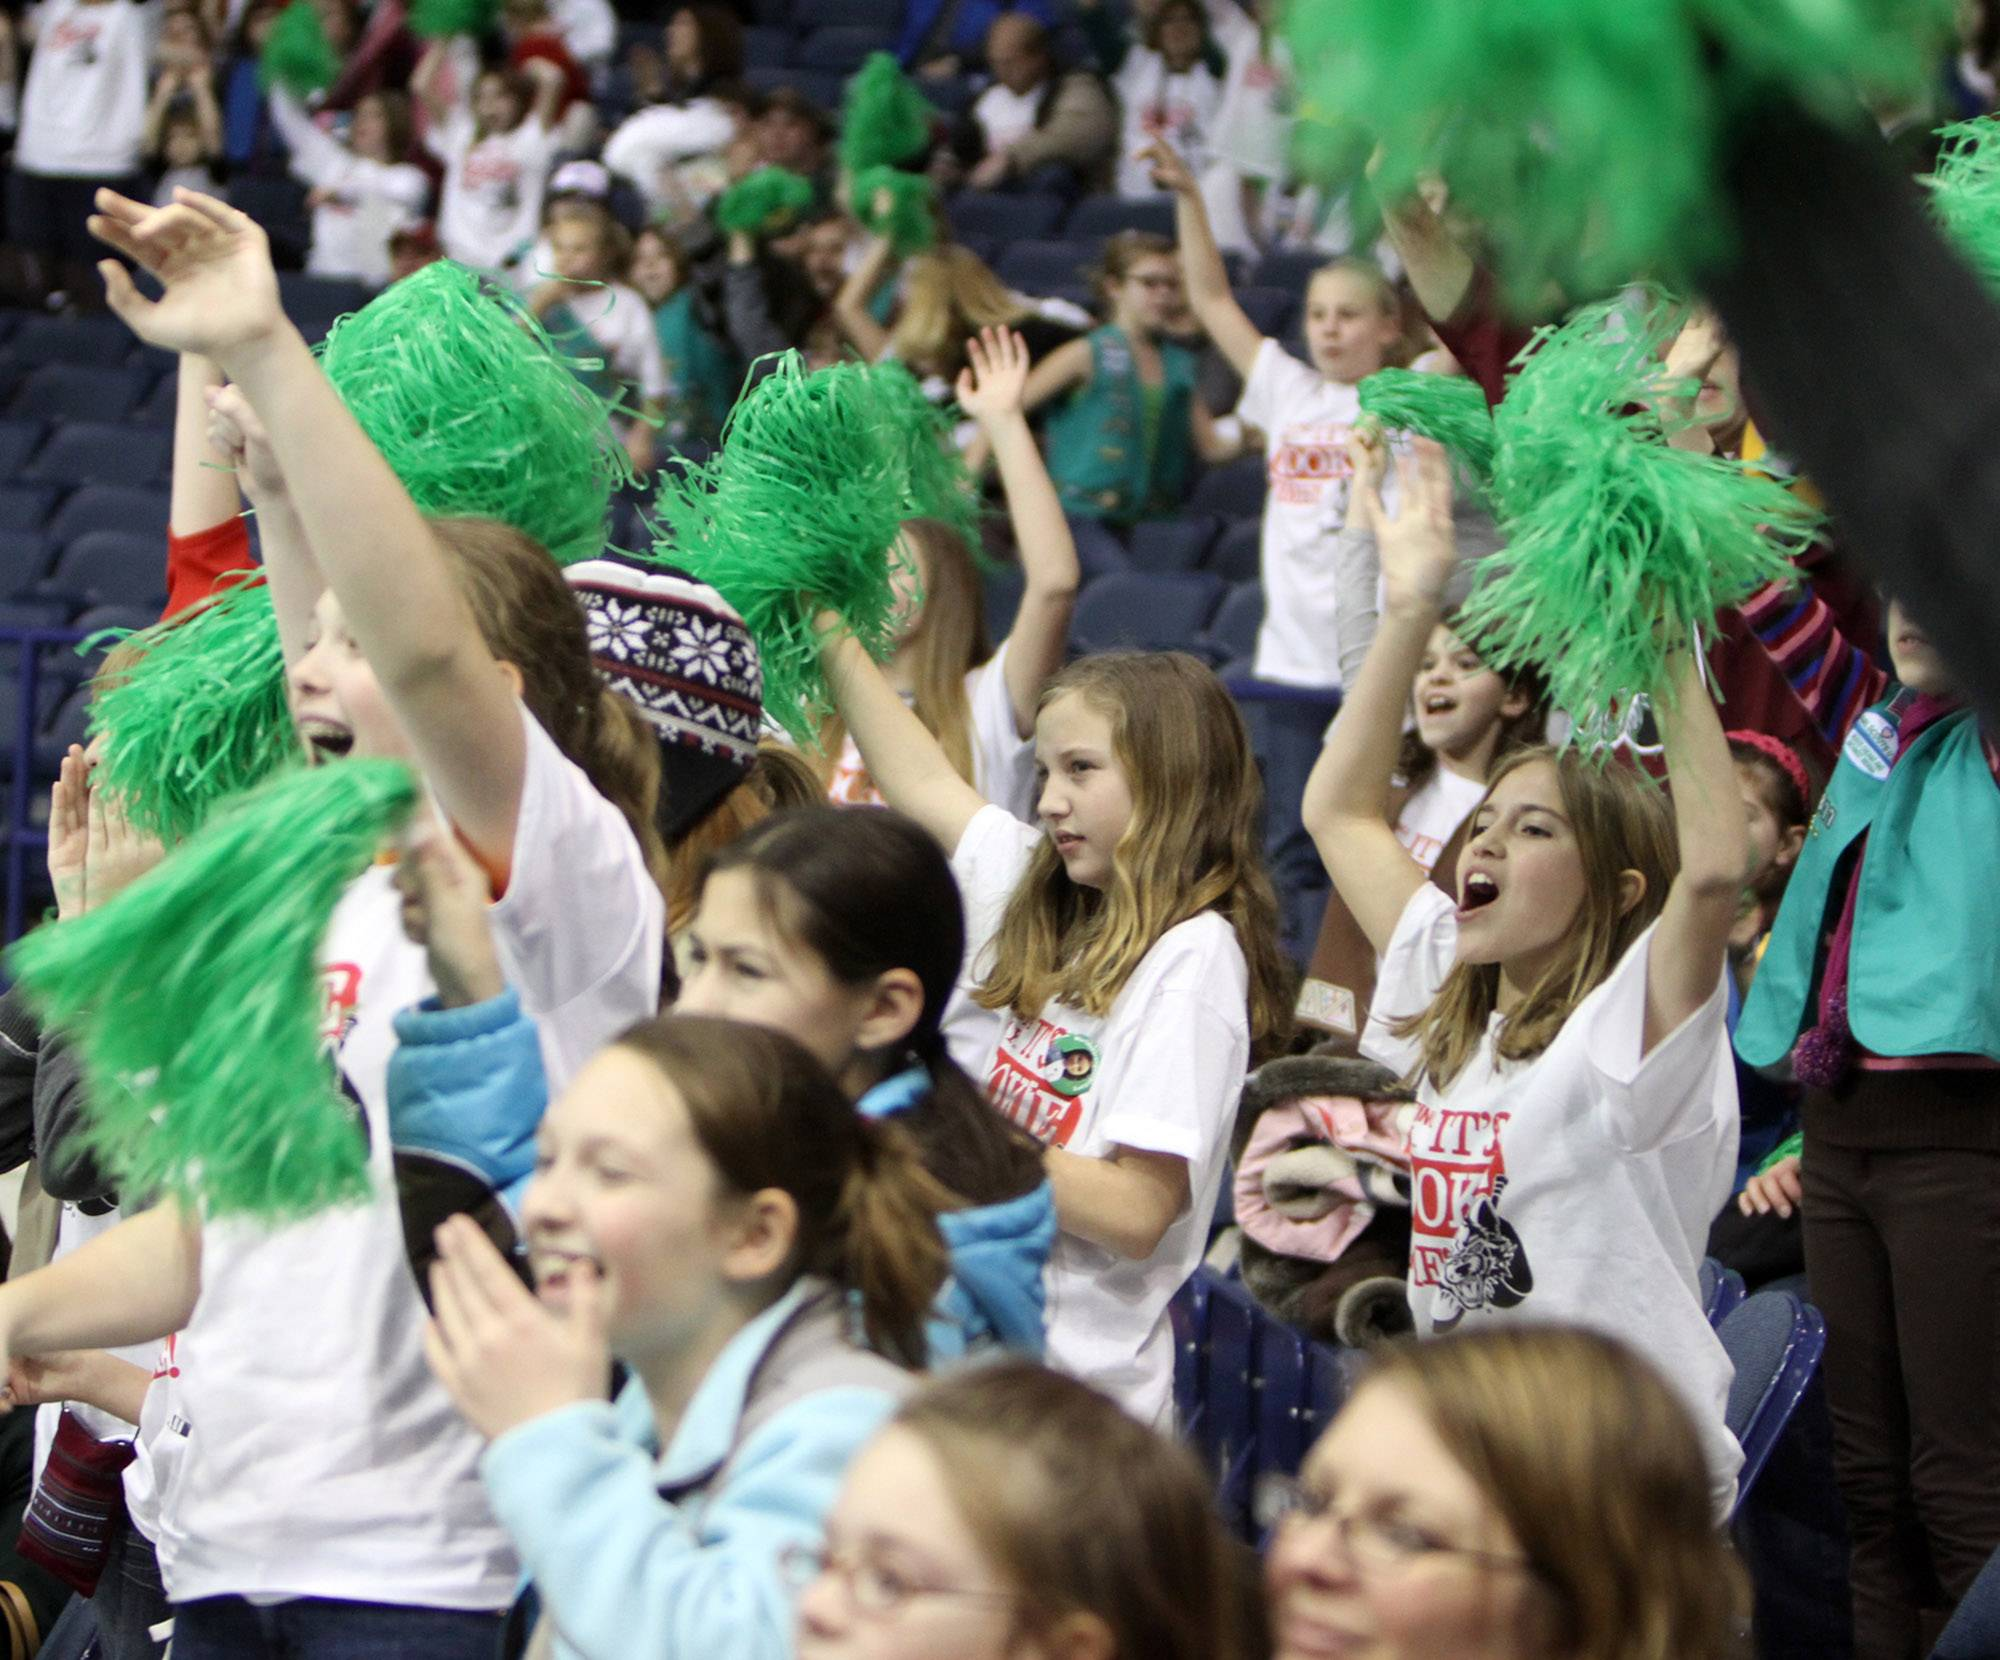 The annual Girl Scouts Cookie Kickoff at the Allstate Arena will feature a new twist this year — an attempt to set the world record for most cookies dunked into milk at the same time.